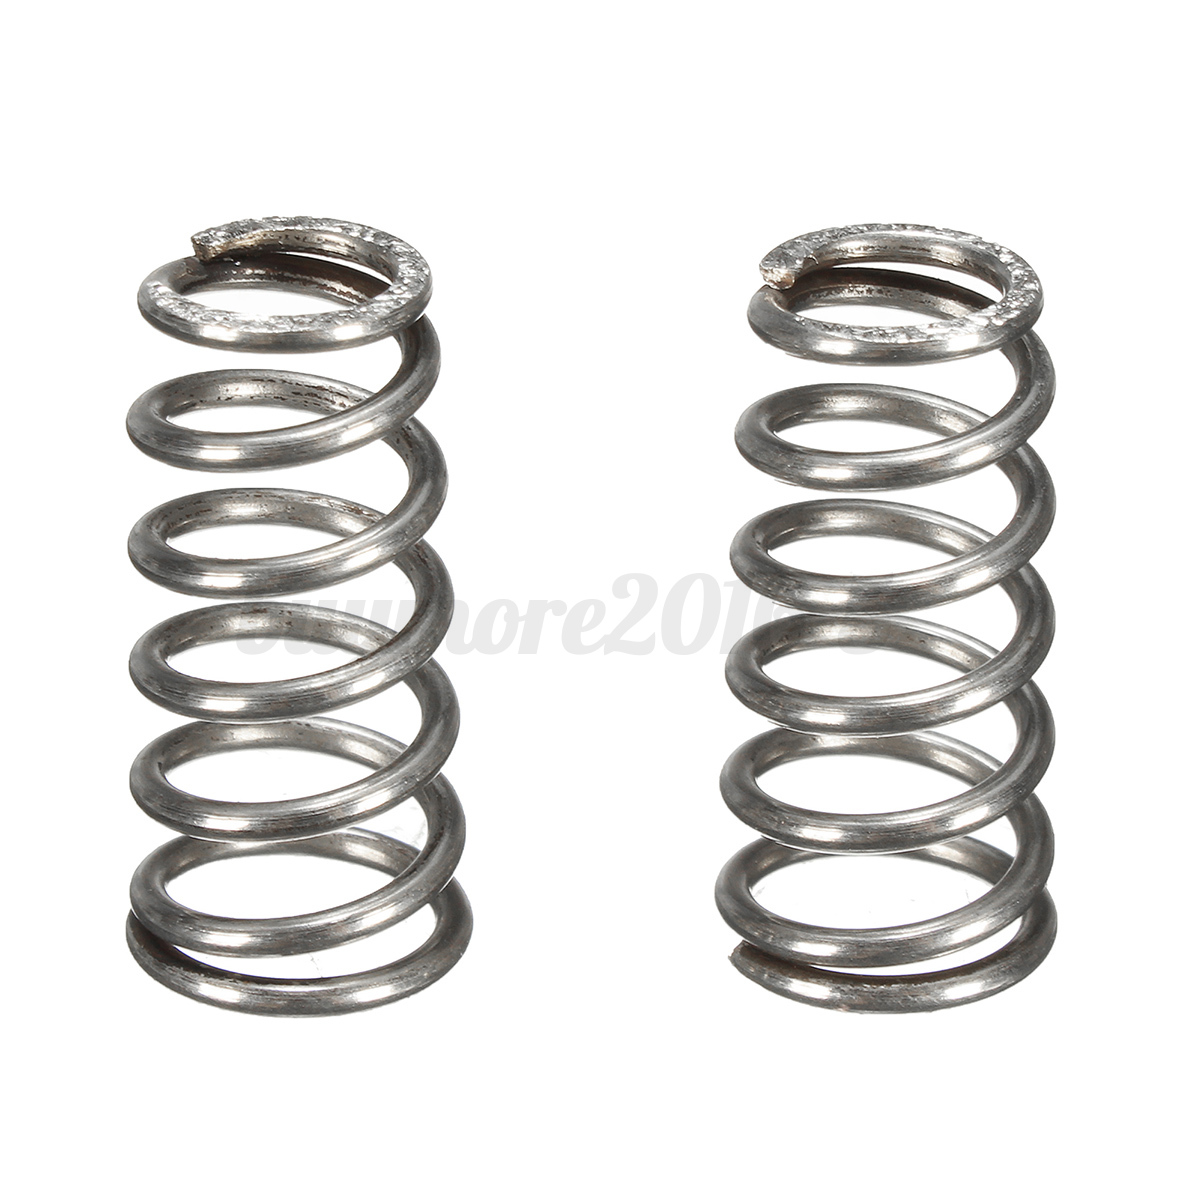 1 2 Set Beer Barrel Replacement Keg Seal Kit With Poppet